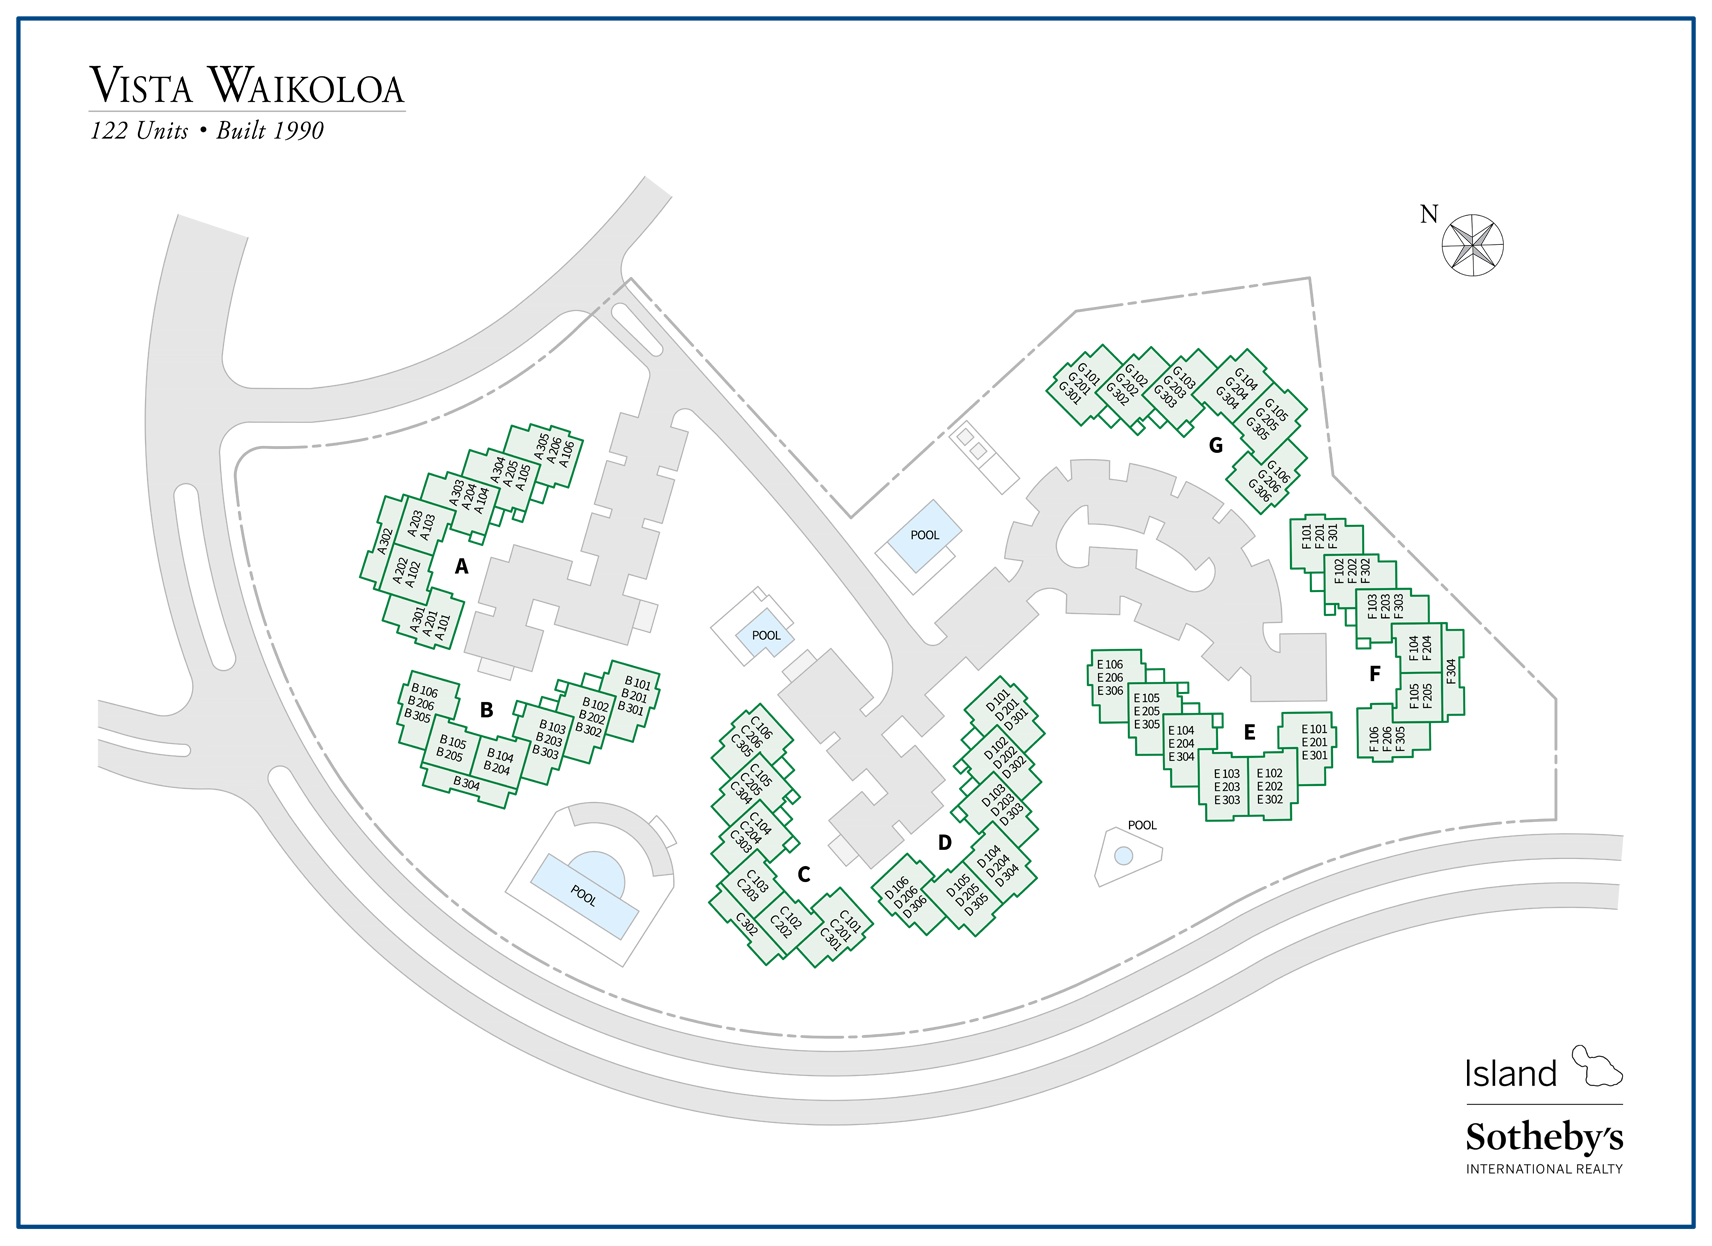 vista waikoloa map